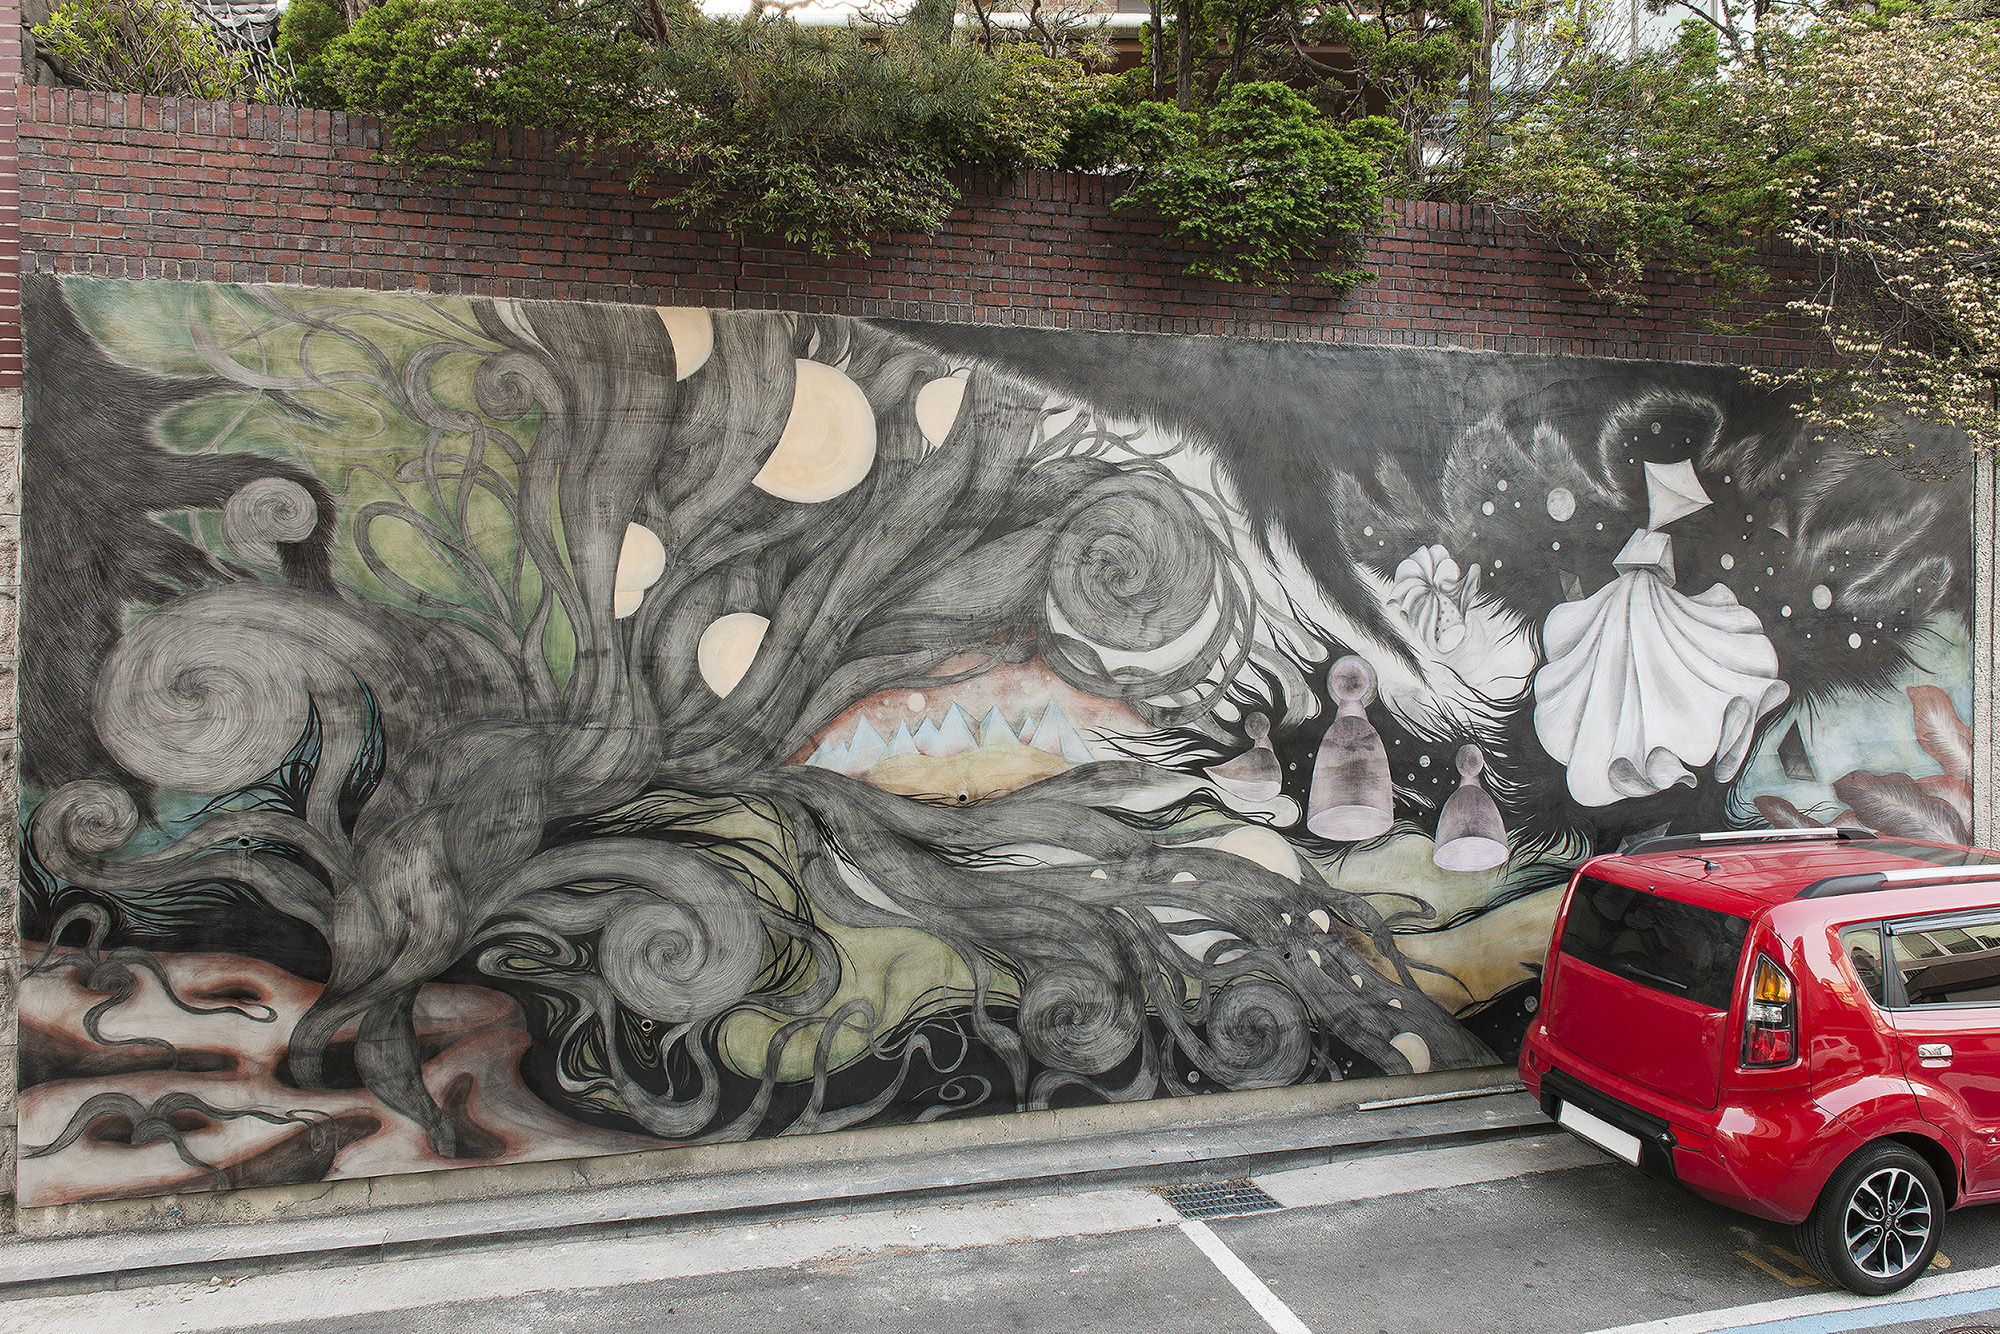 [15p2081] Wall painting_conta and charcoal_450×900cm_2015.jpg